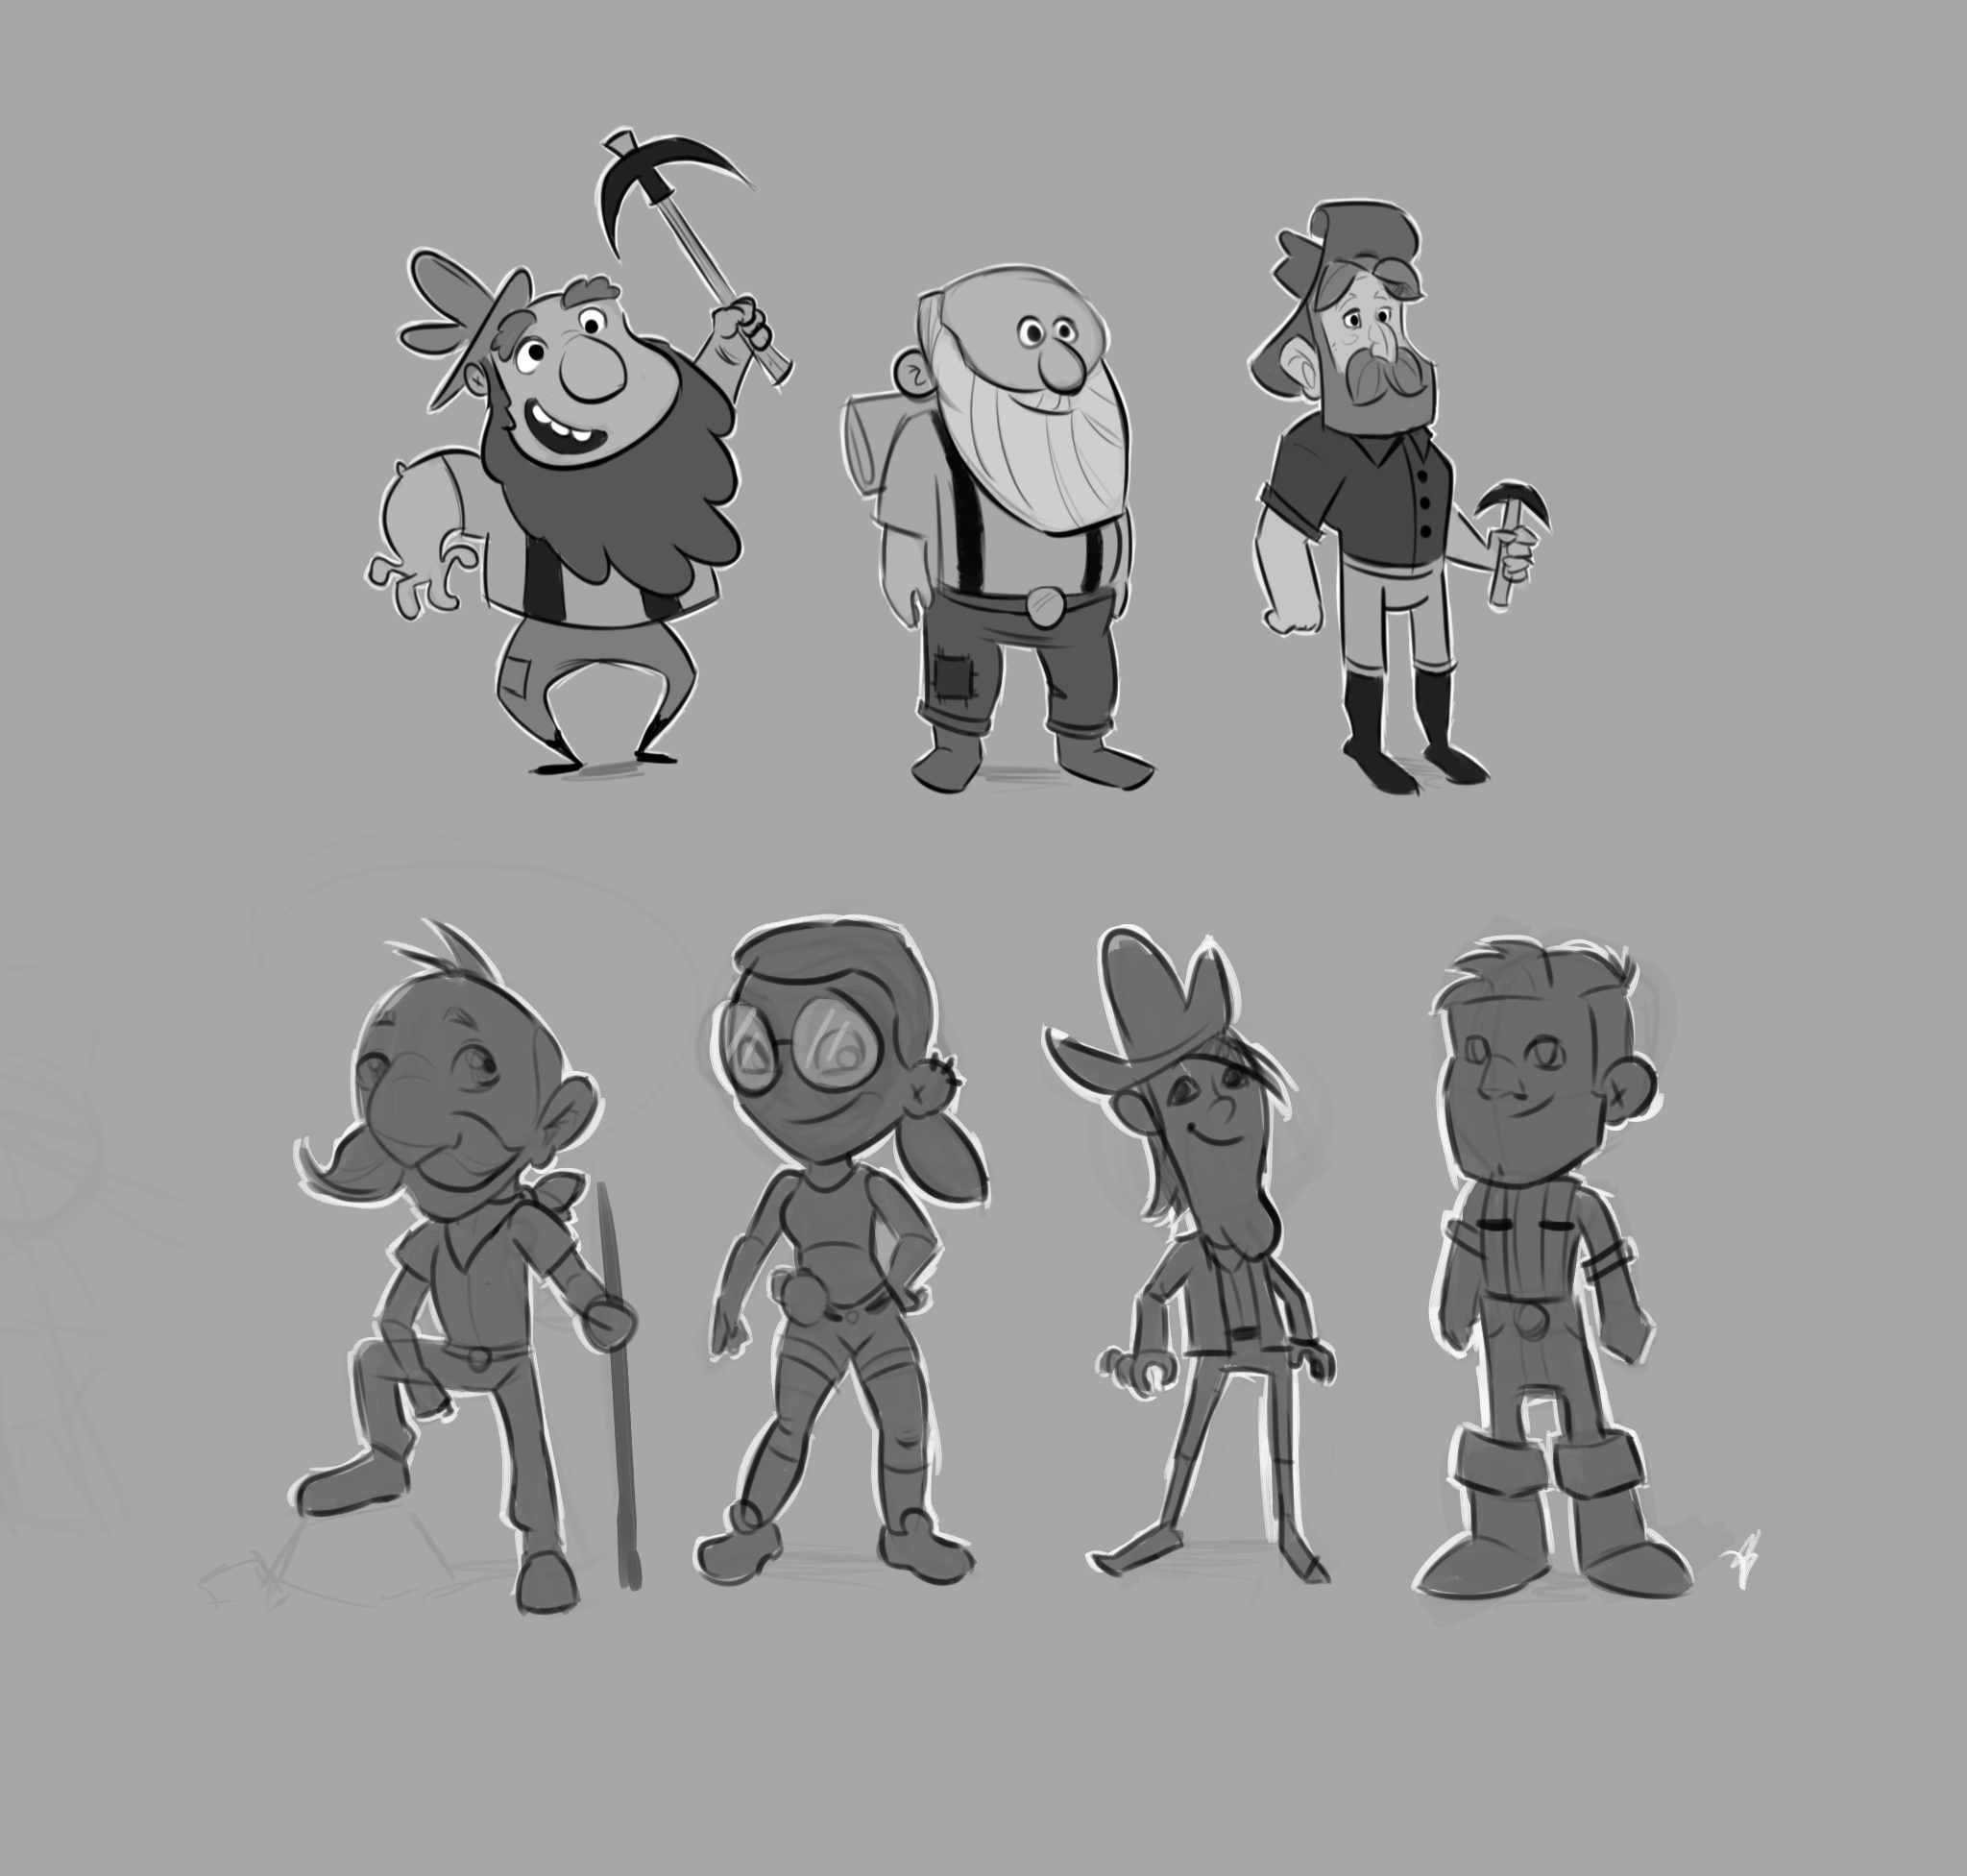 gcg-character-concept-sketches.jpg